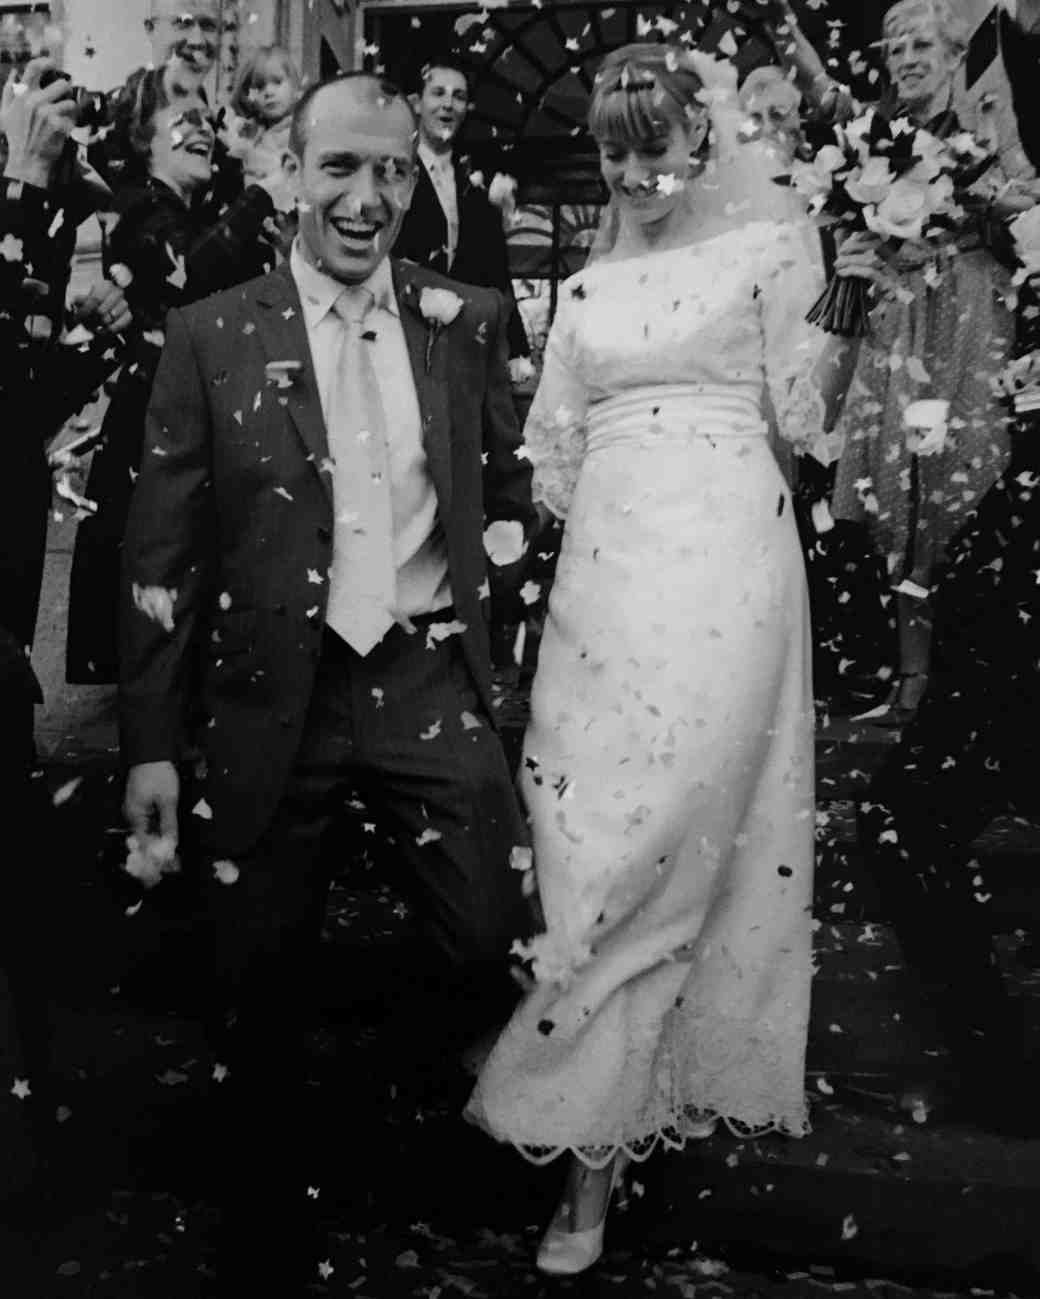 Charlie Brear Wedding Photo